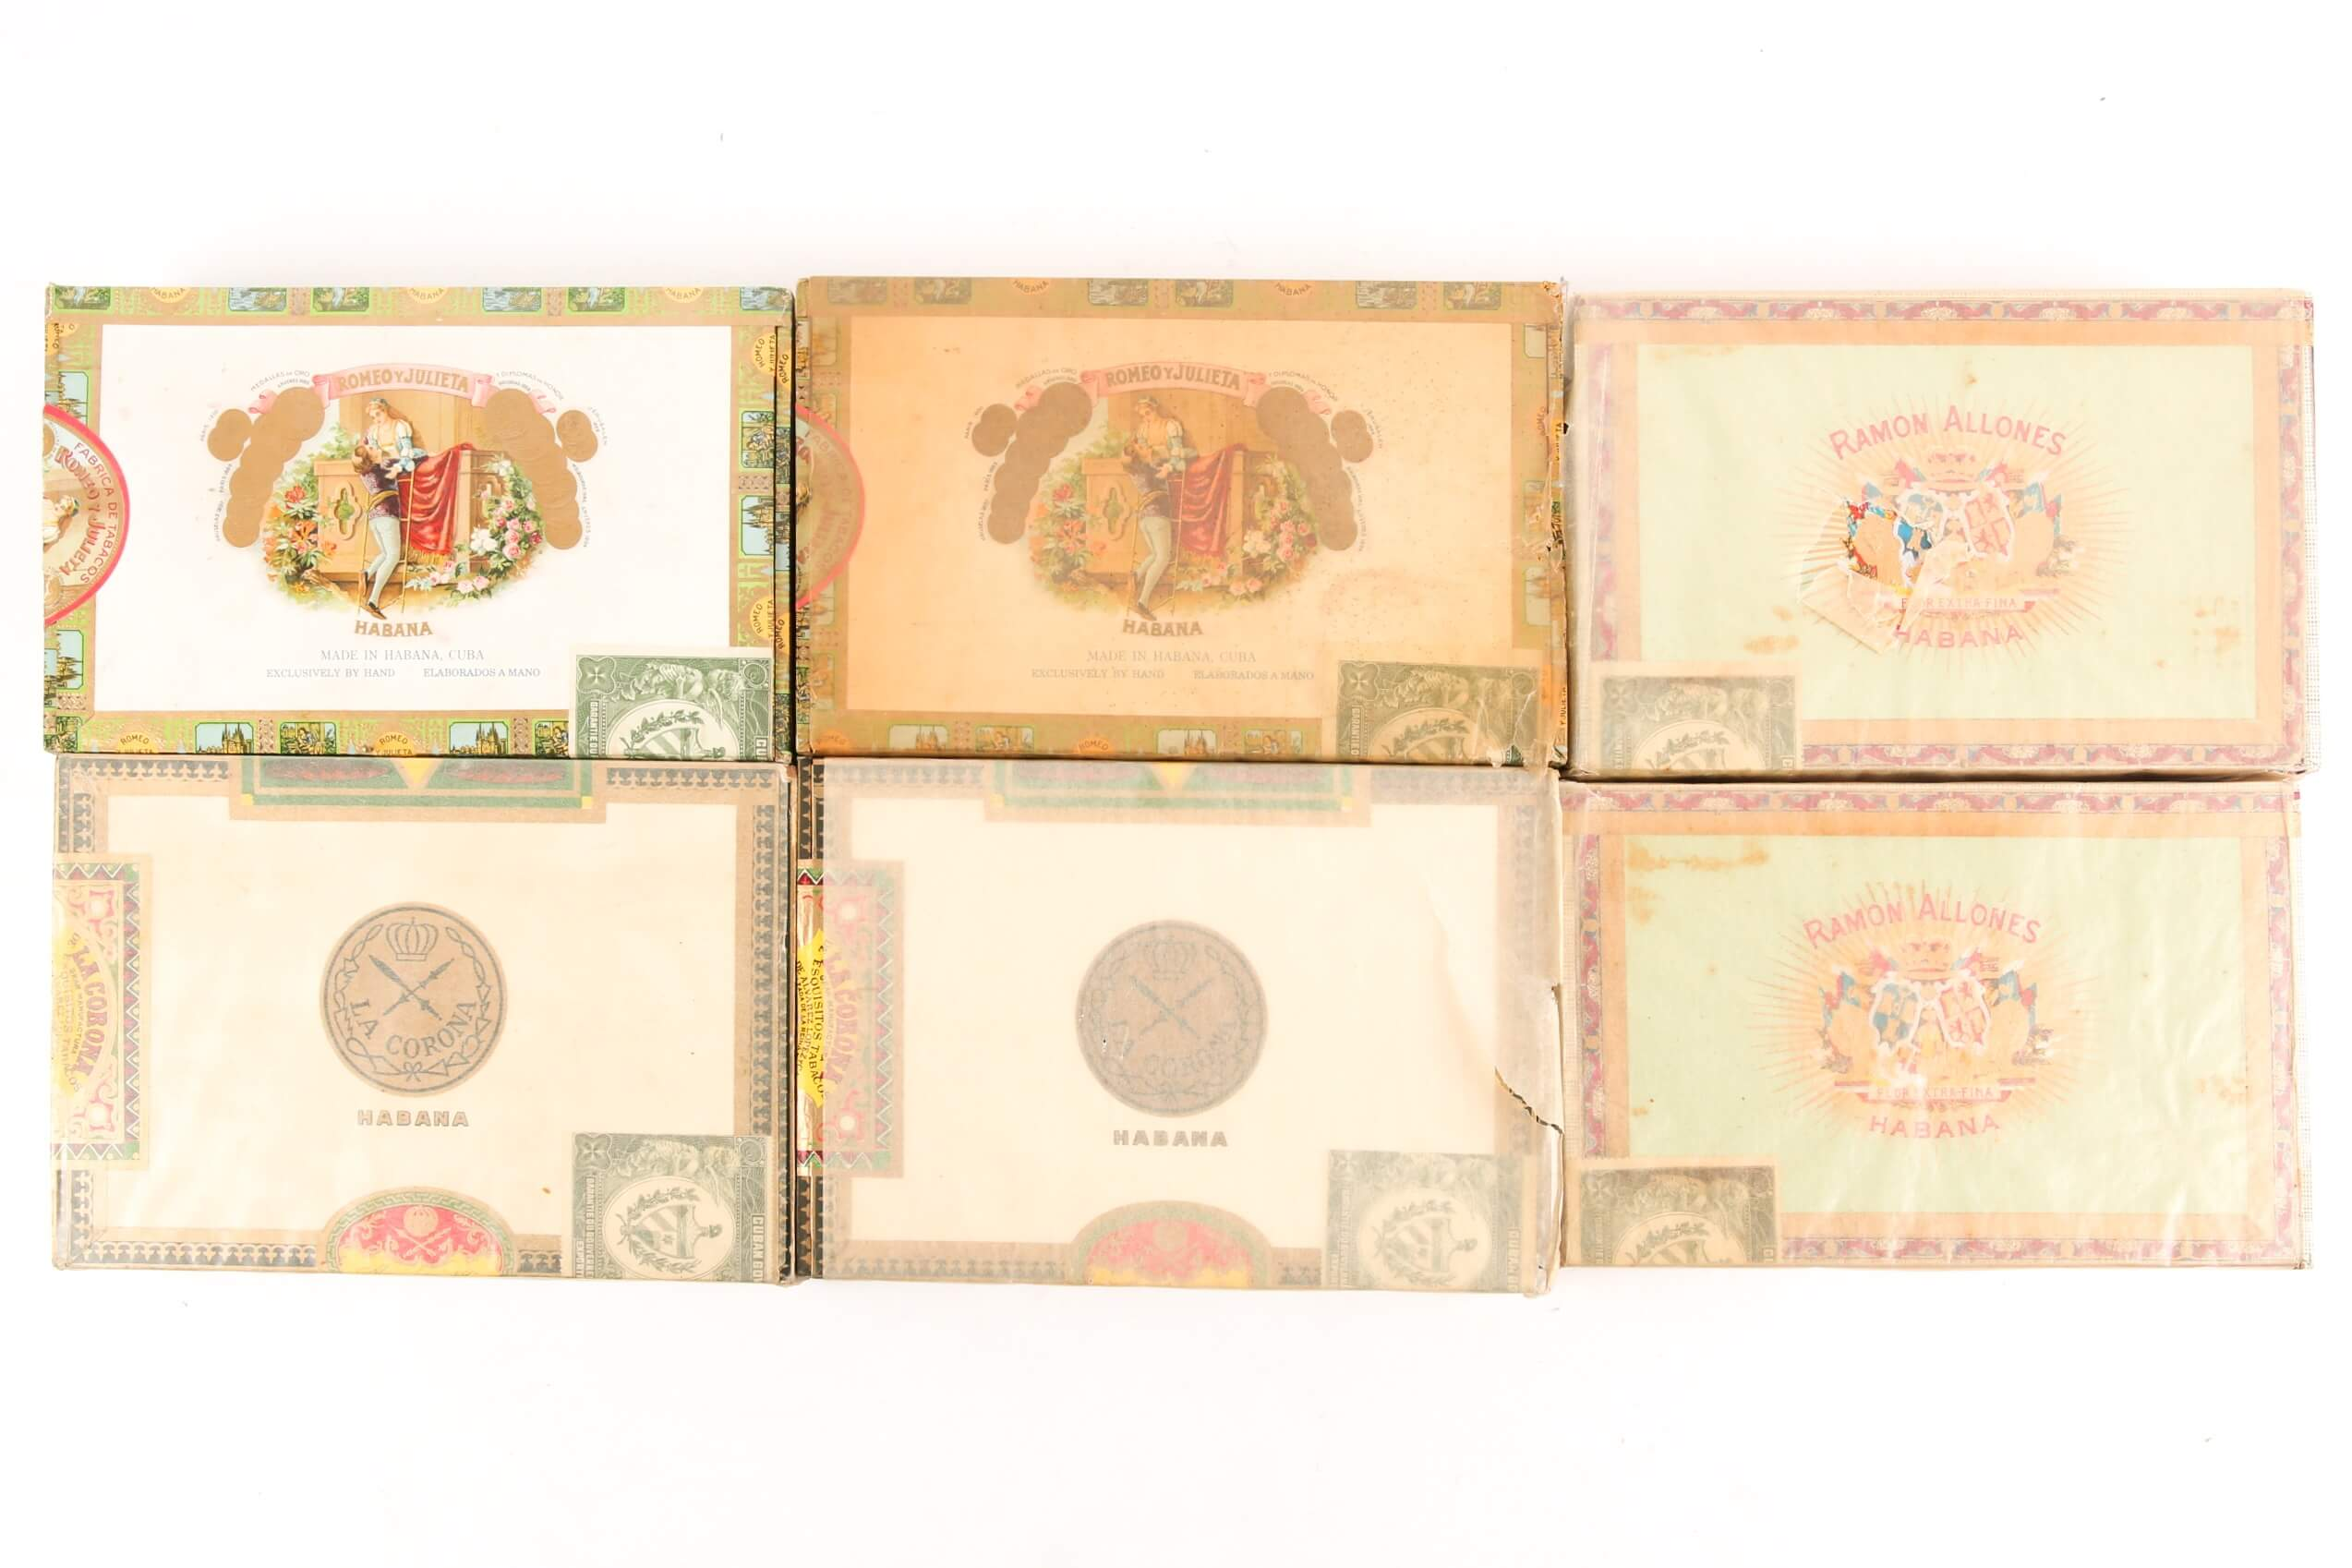 Six boxes of vintage Cuban cigars. Sold for £4,400.